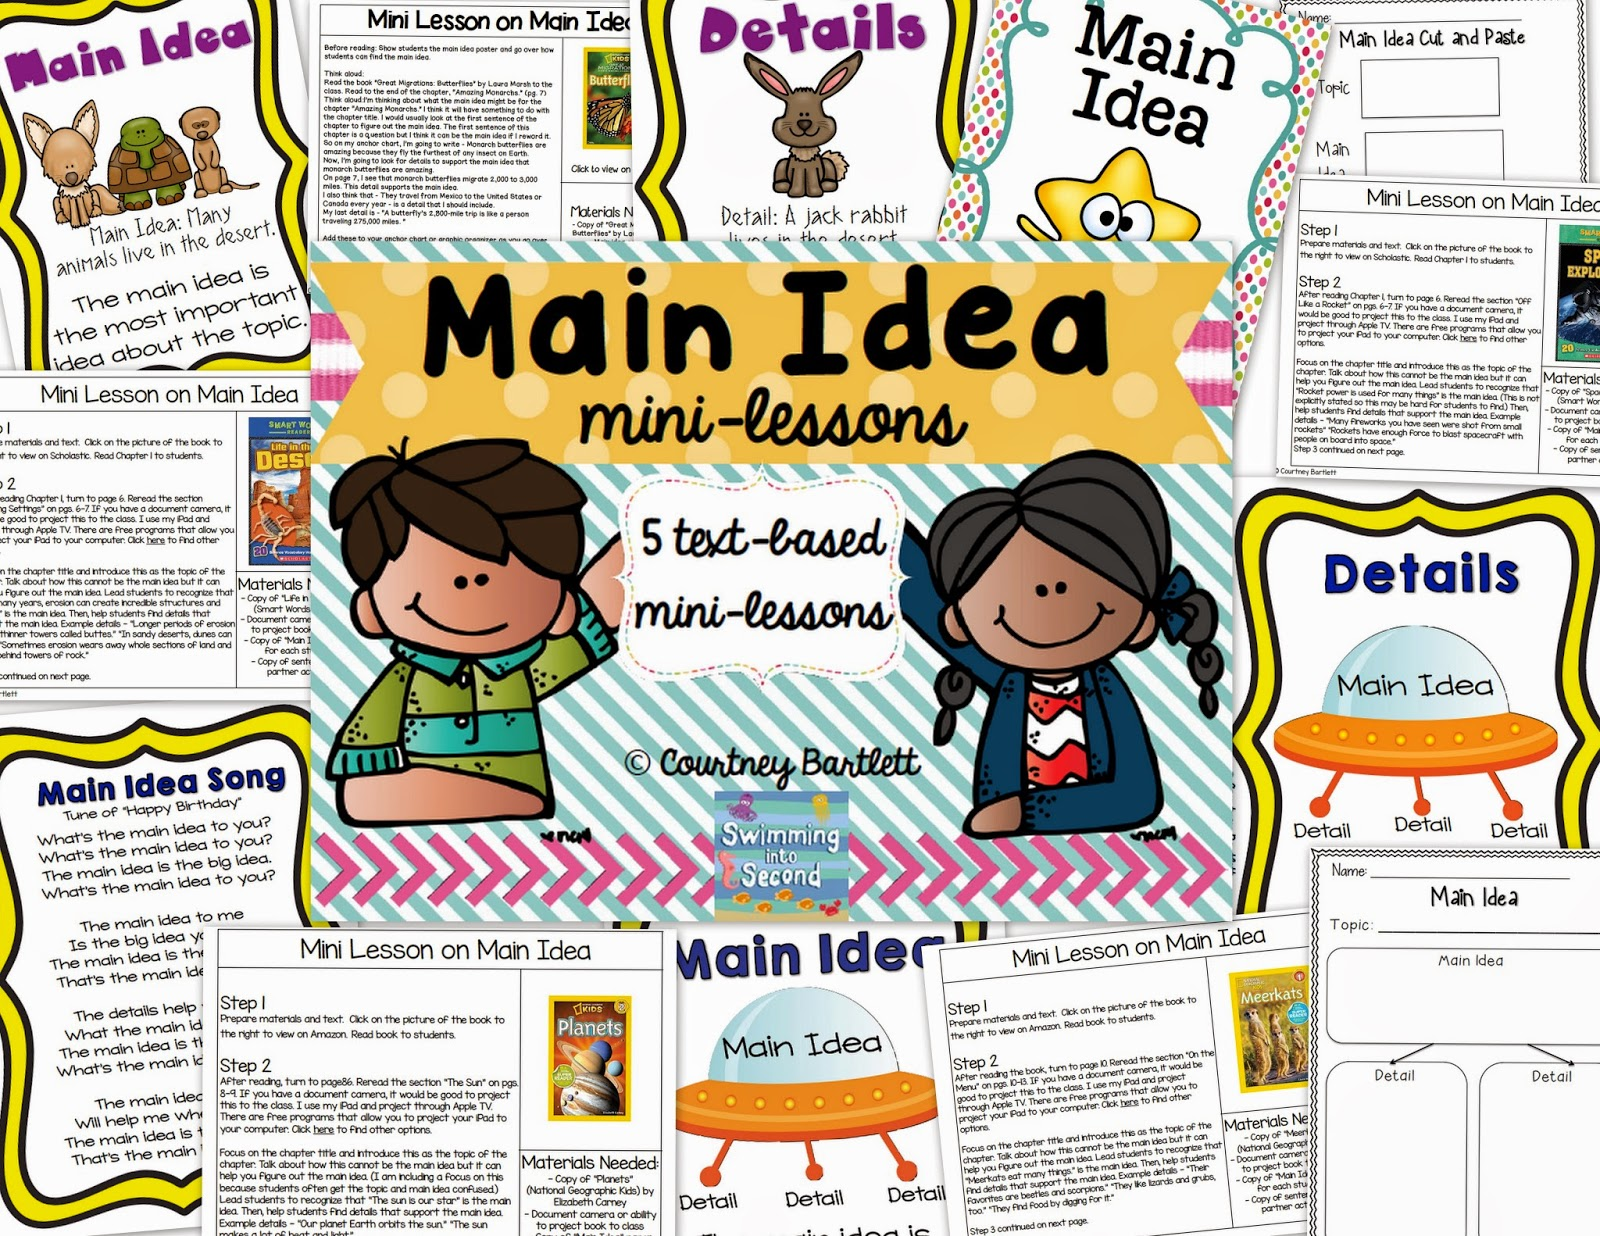 https://www.teacherspayteachers.com/Product/Main-Idea-mini-lesson-pack-1719199